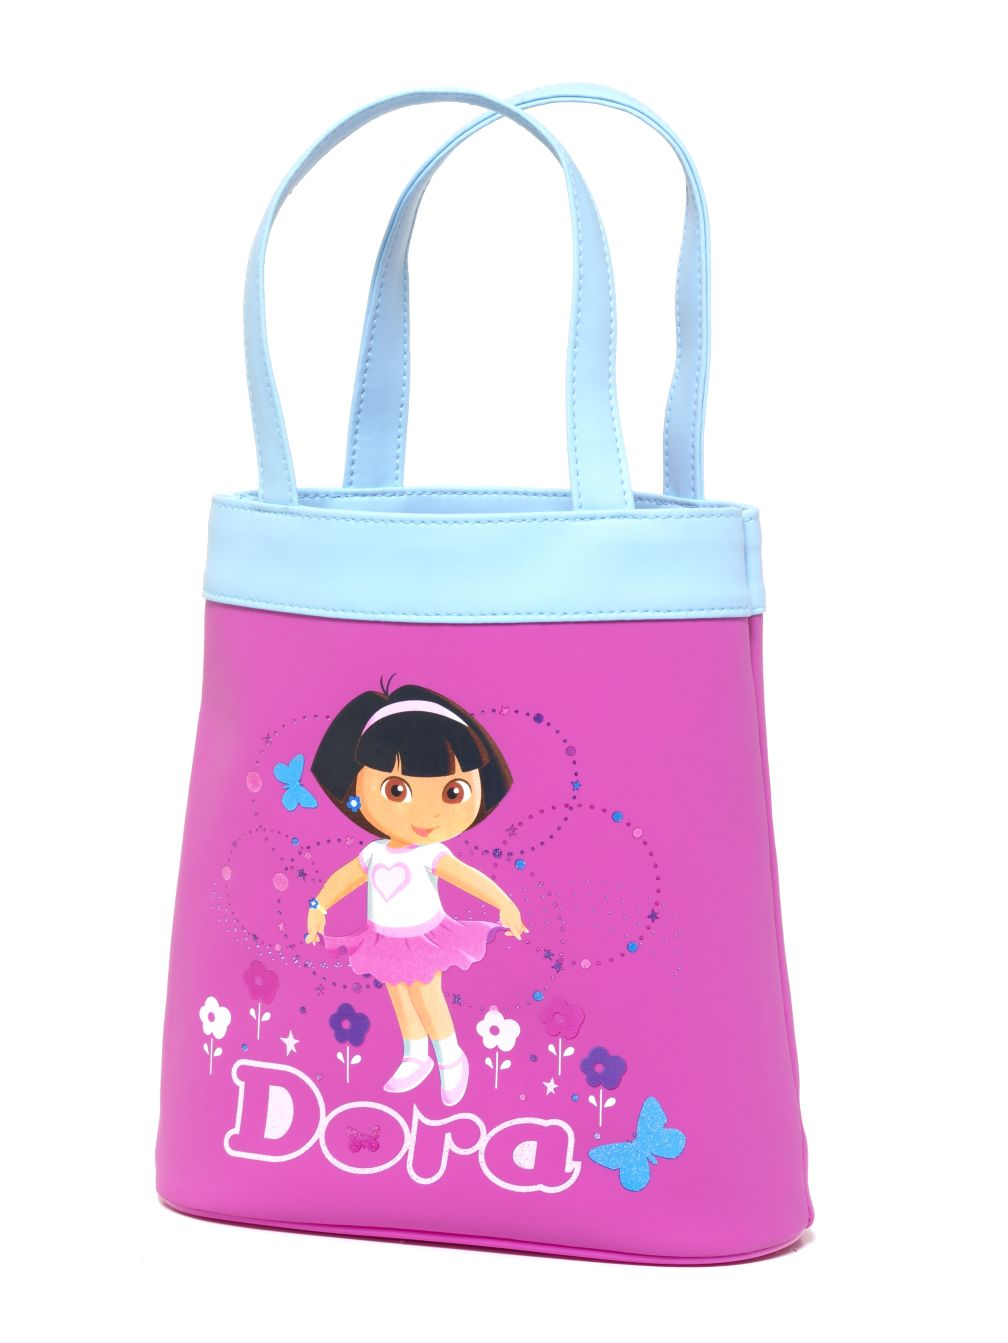 Dora the Explorer Mini Tote Bag